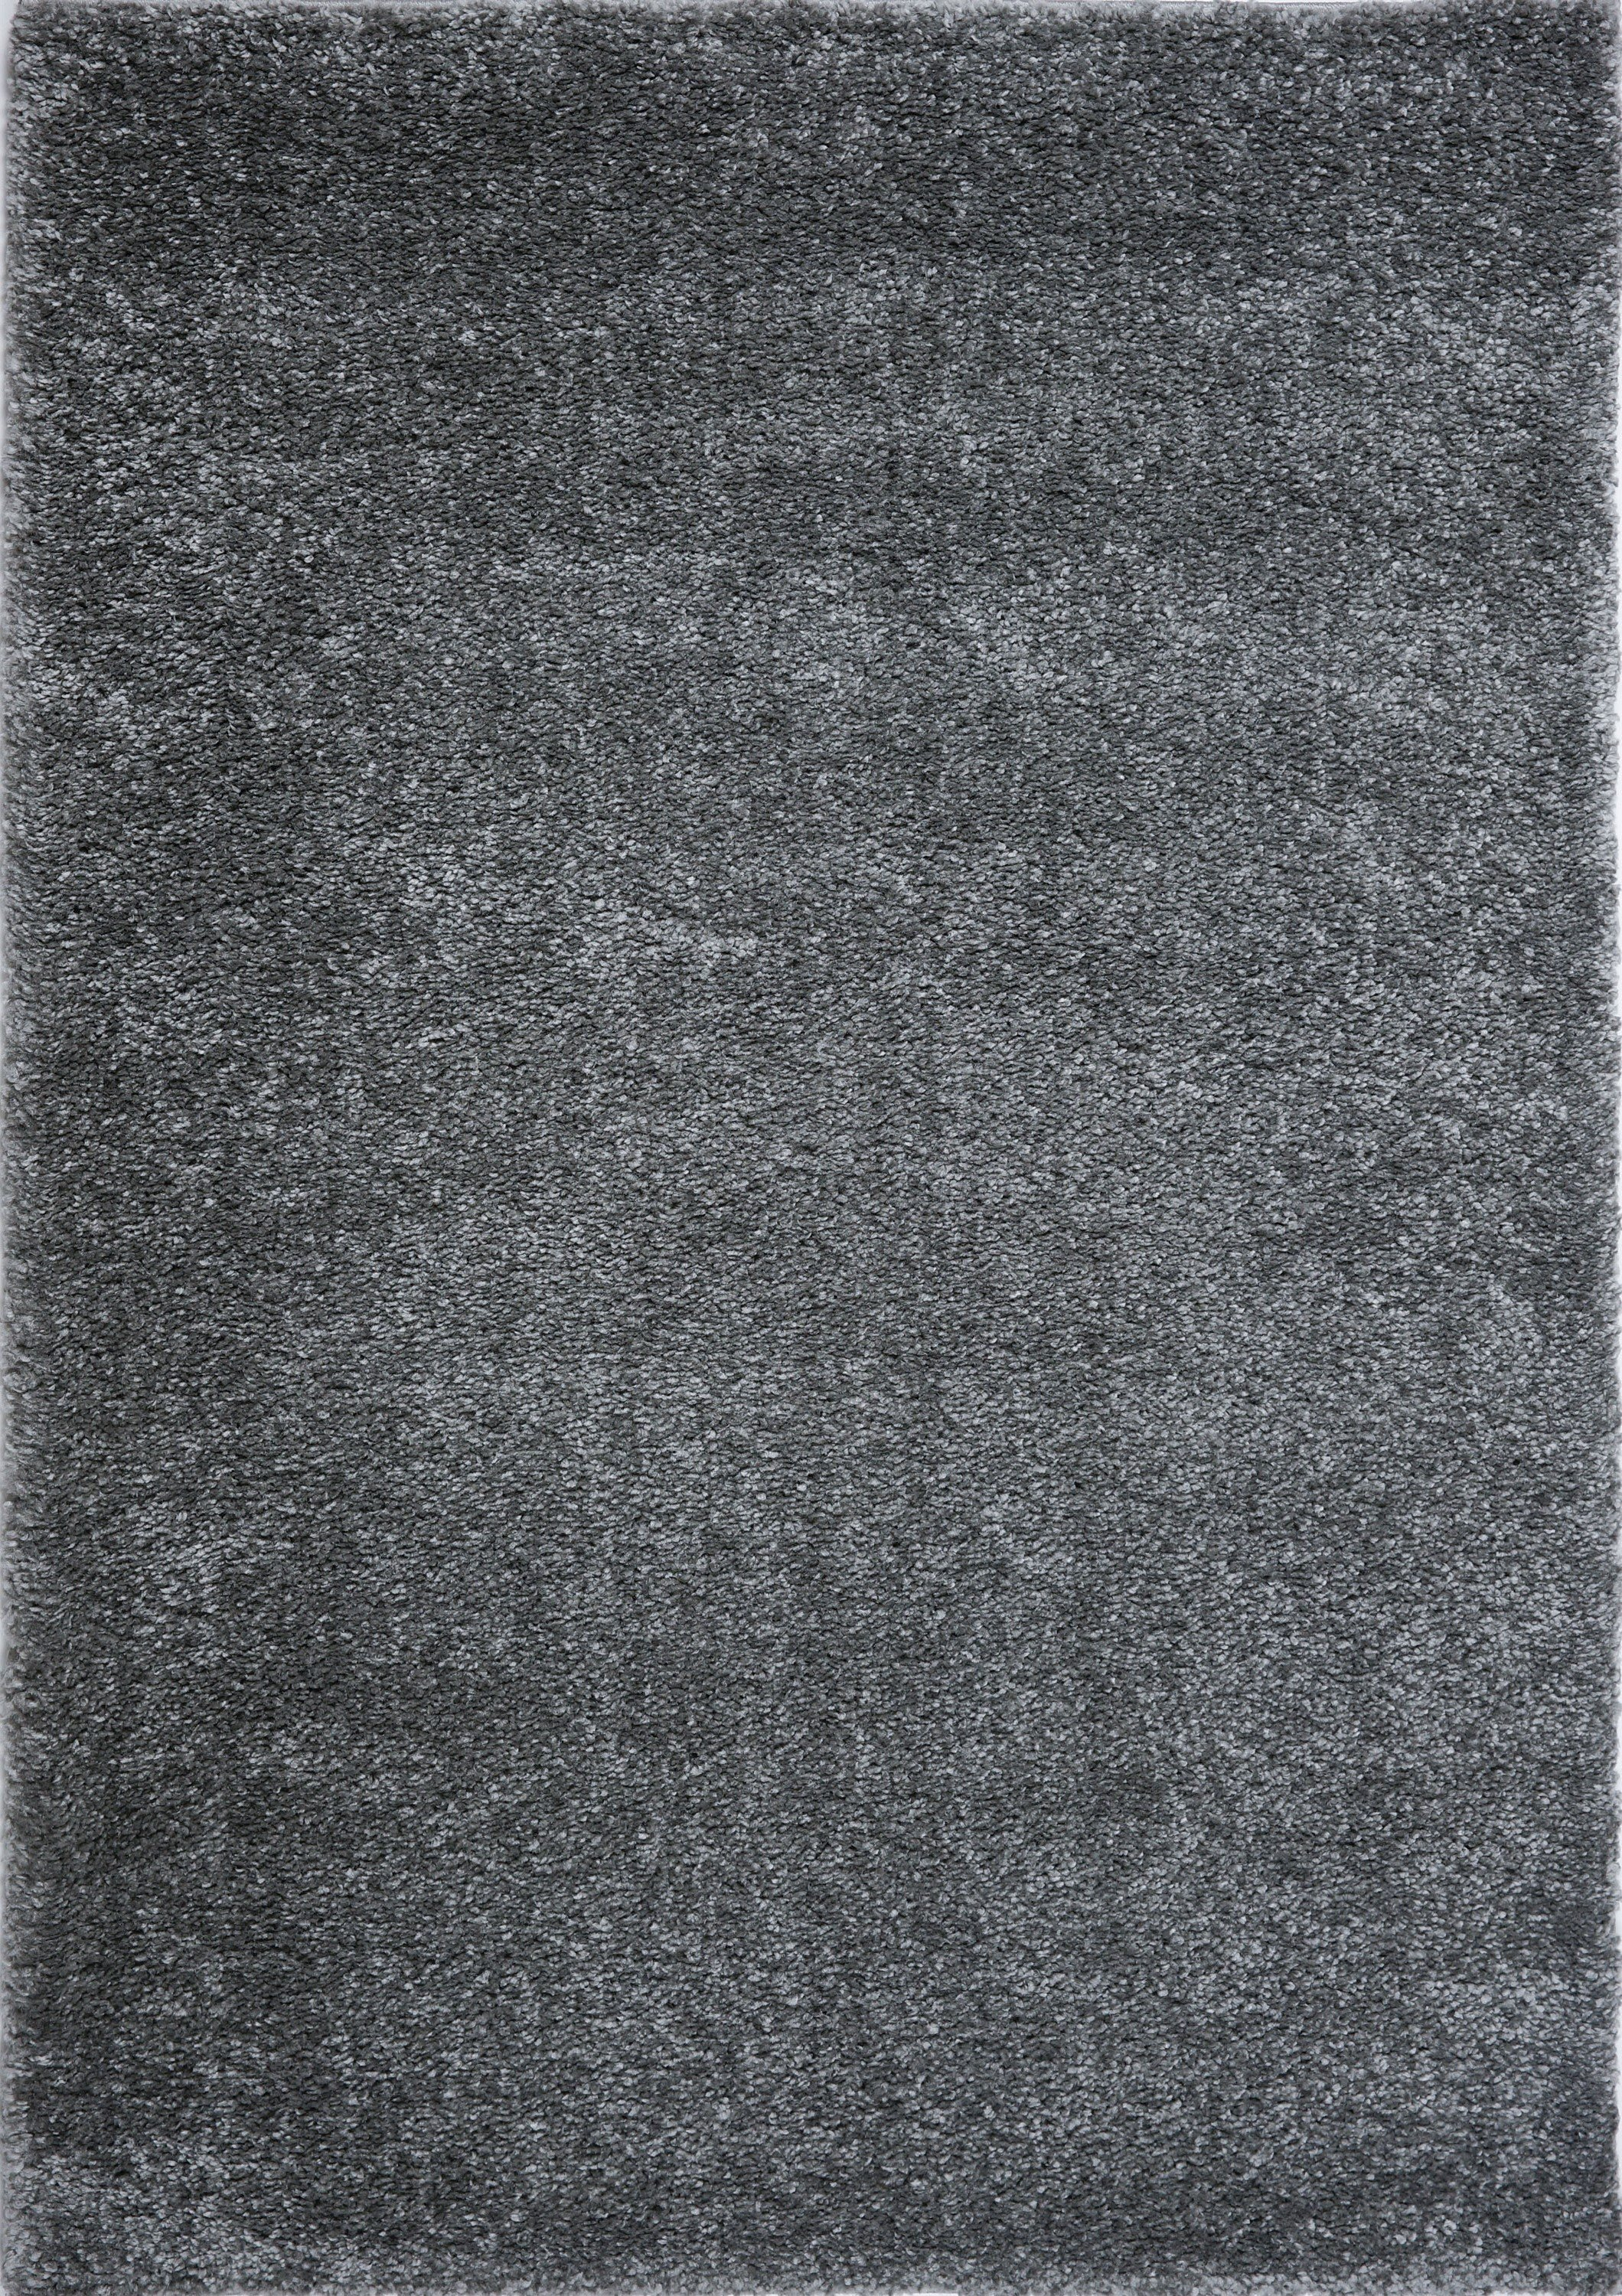 ladole rugs soft plush smooth solid plain color modern durable area rug carpet for living room bedroom in grey